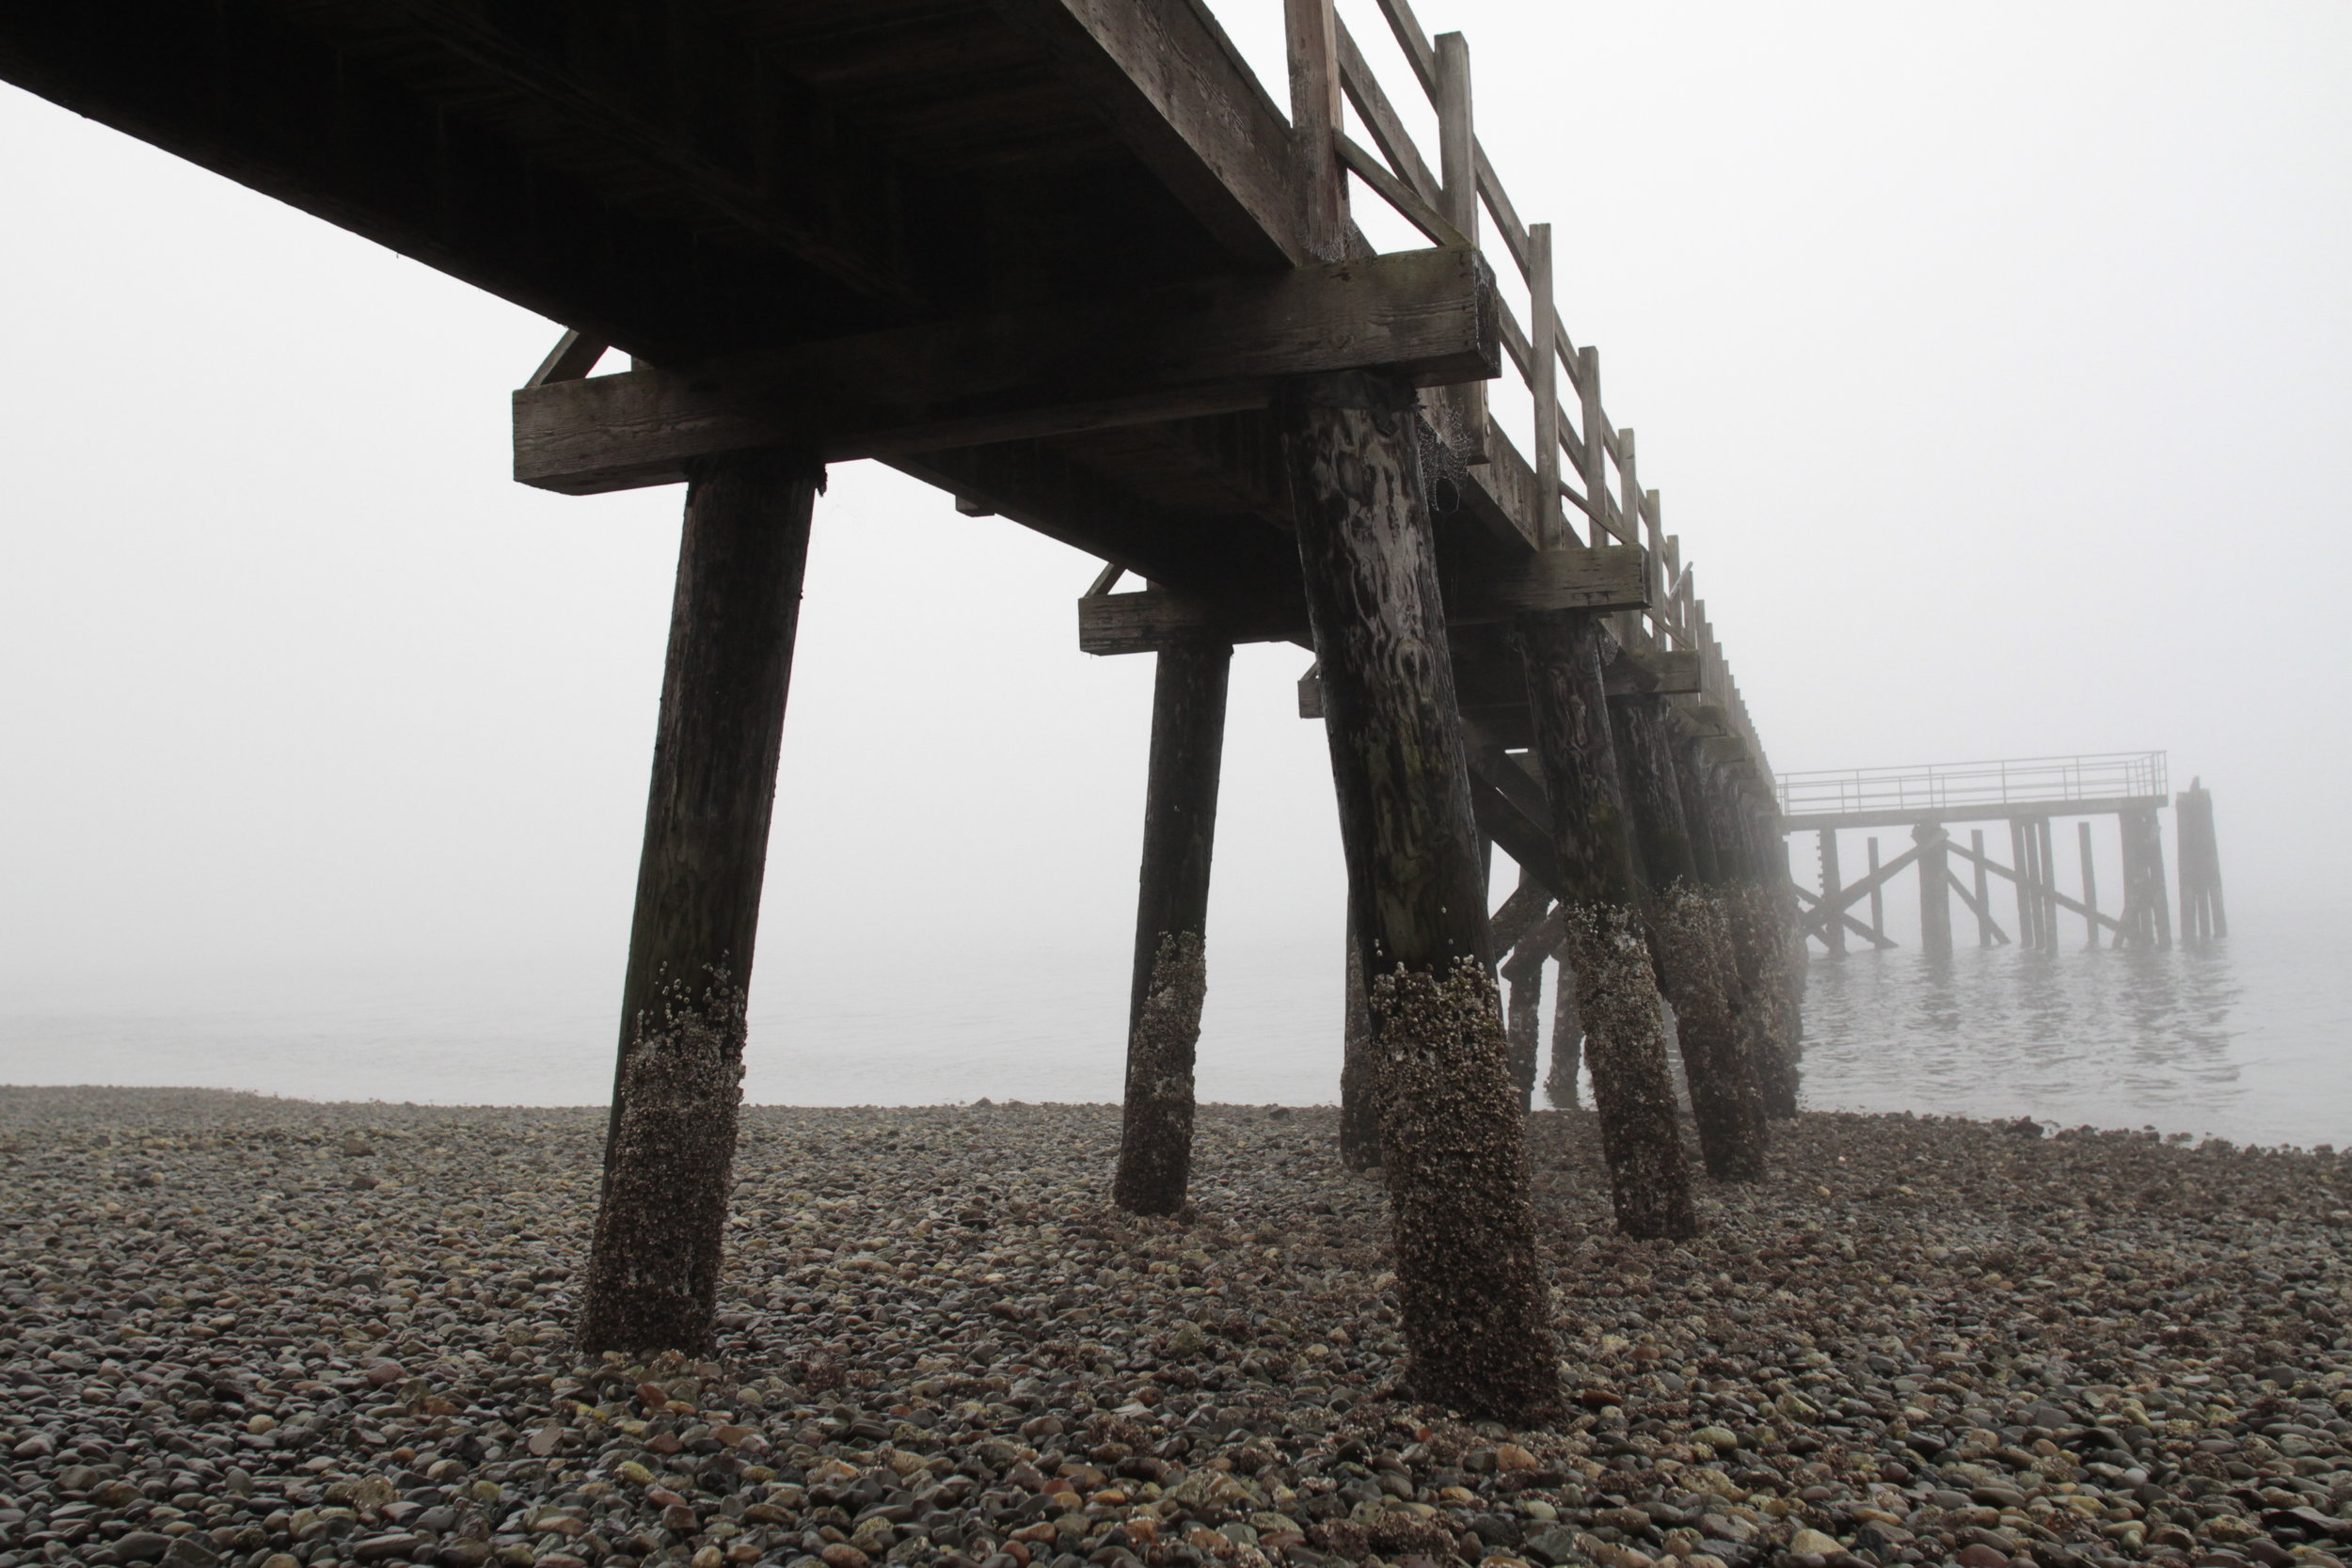 Bainbridge Island's Point White Pier, shrouded in October fog. October 2018.